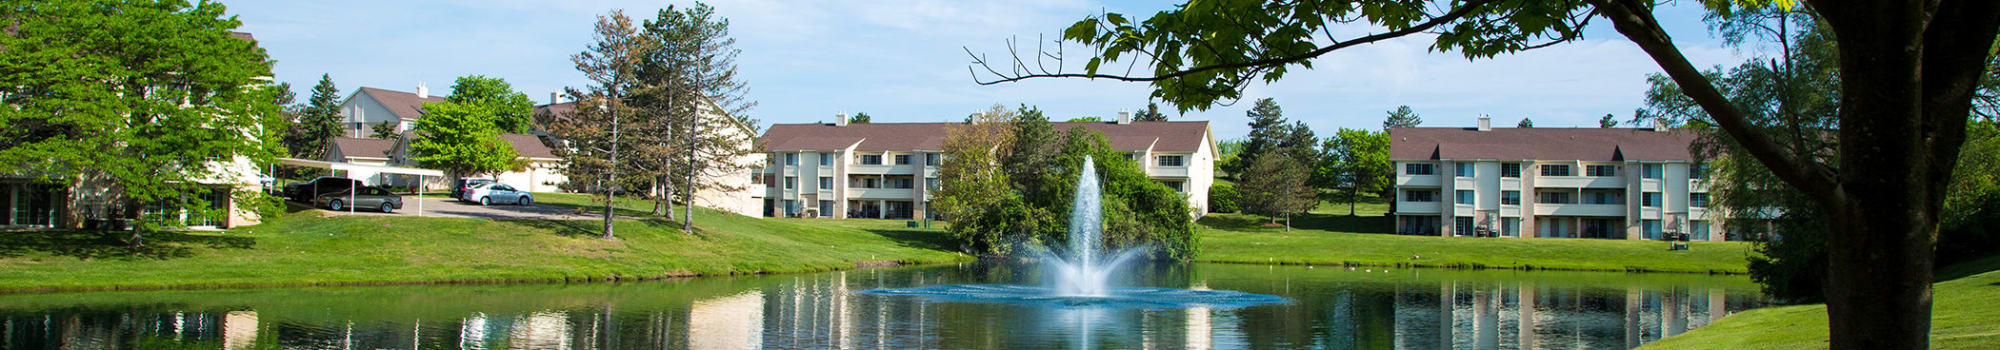 Pet friendly at Aldingbrooke in West Bloomfield, Michigan